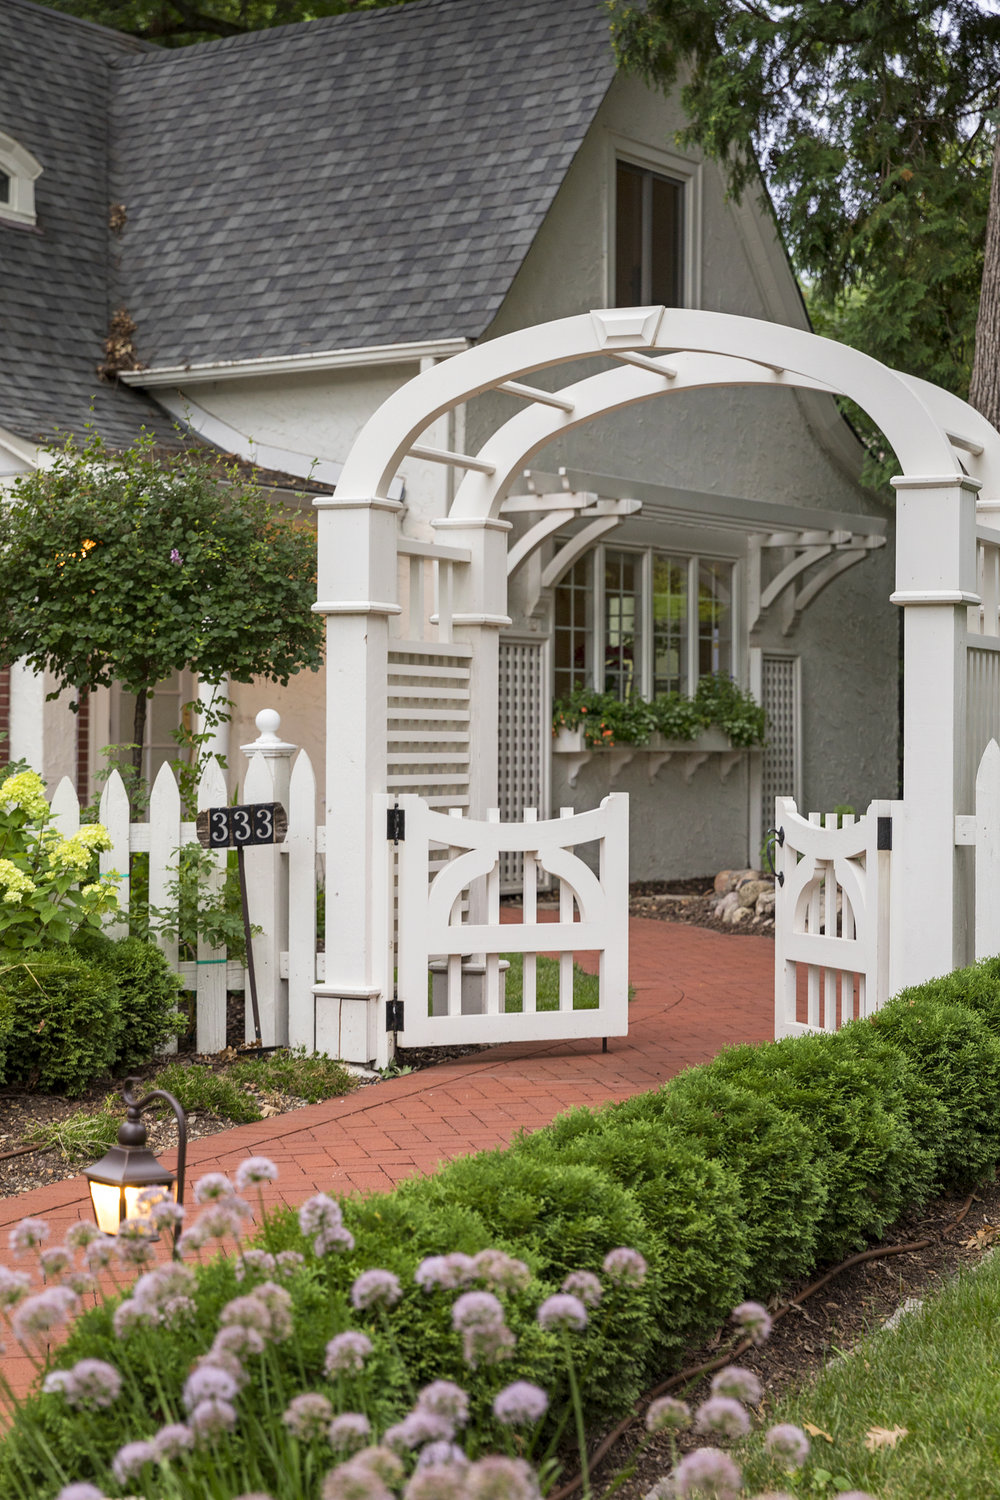 Mom's Design Build - White Fence Archway Pergola